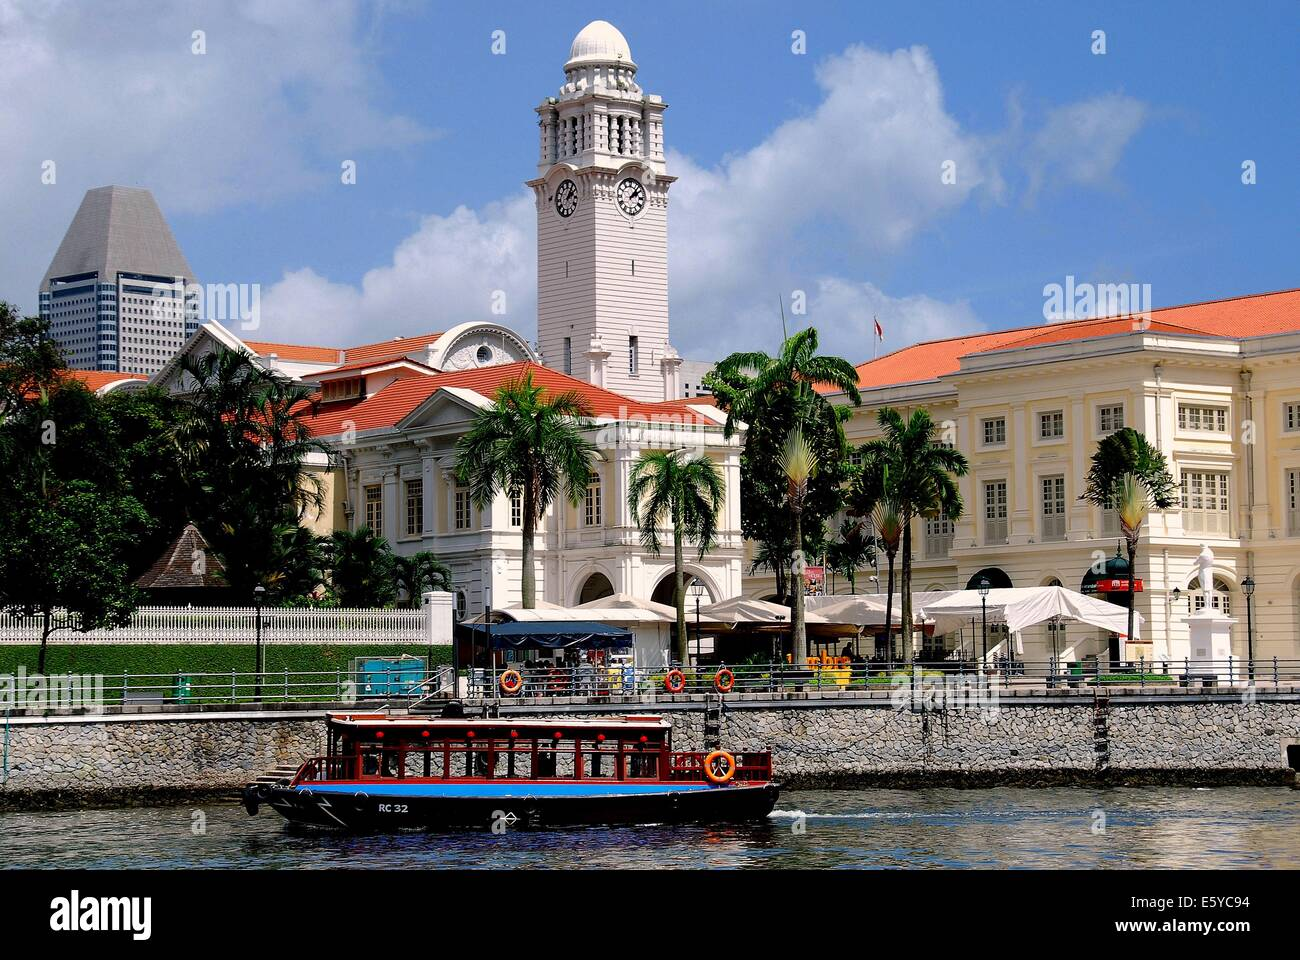 SINGAPORE:  A tour boat on the Singapore River passes the Asian Civilisations Museum and Victoria Theatre clock - Stock Image